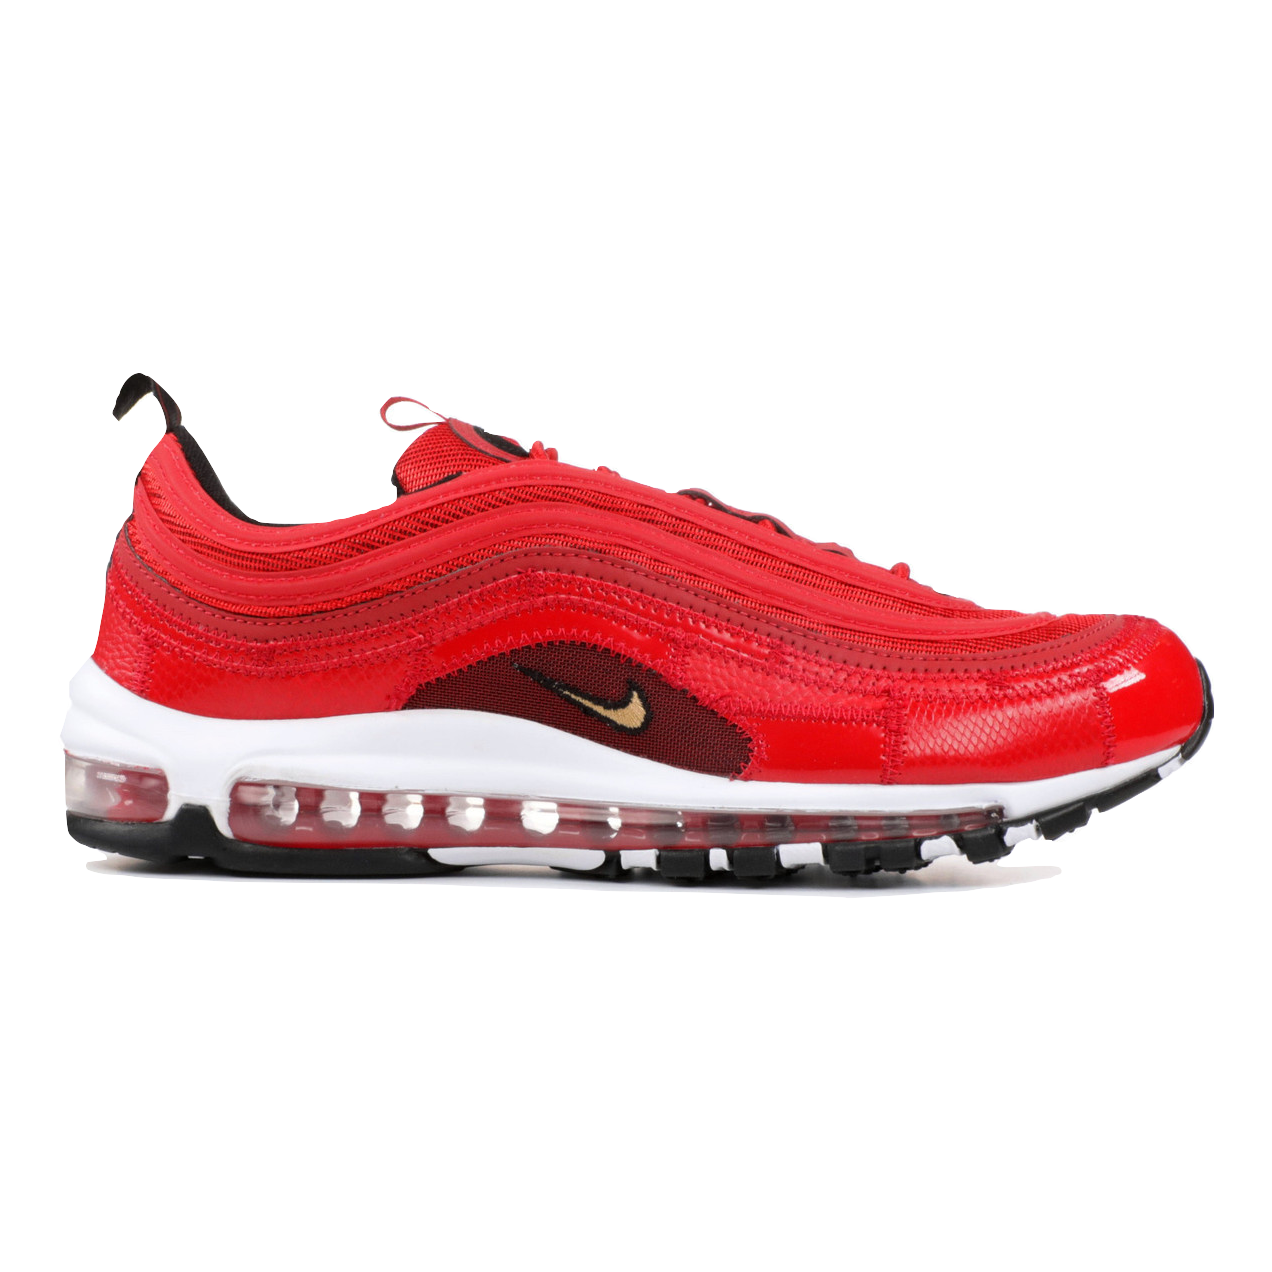 Nike Air Max 97 CR7- Cristiano Ronaldo Portugal Patchwork